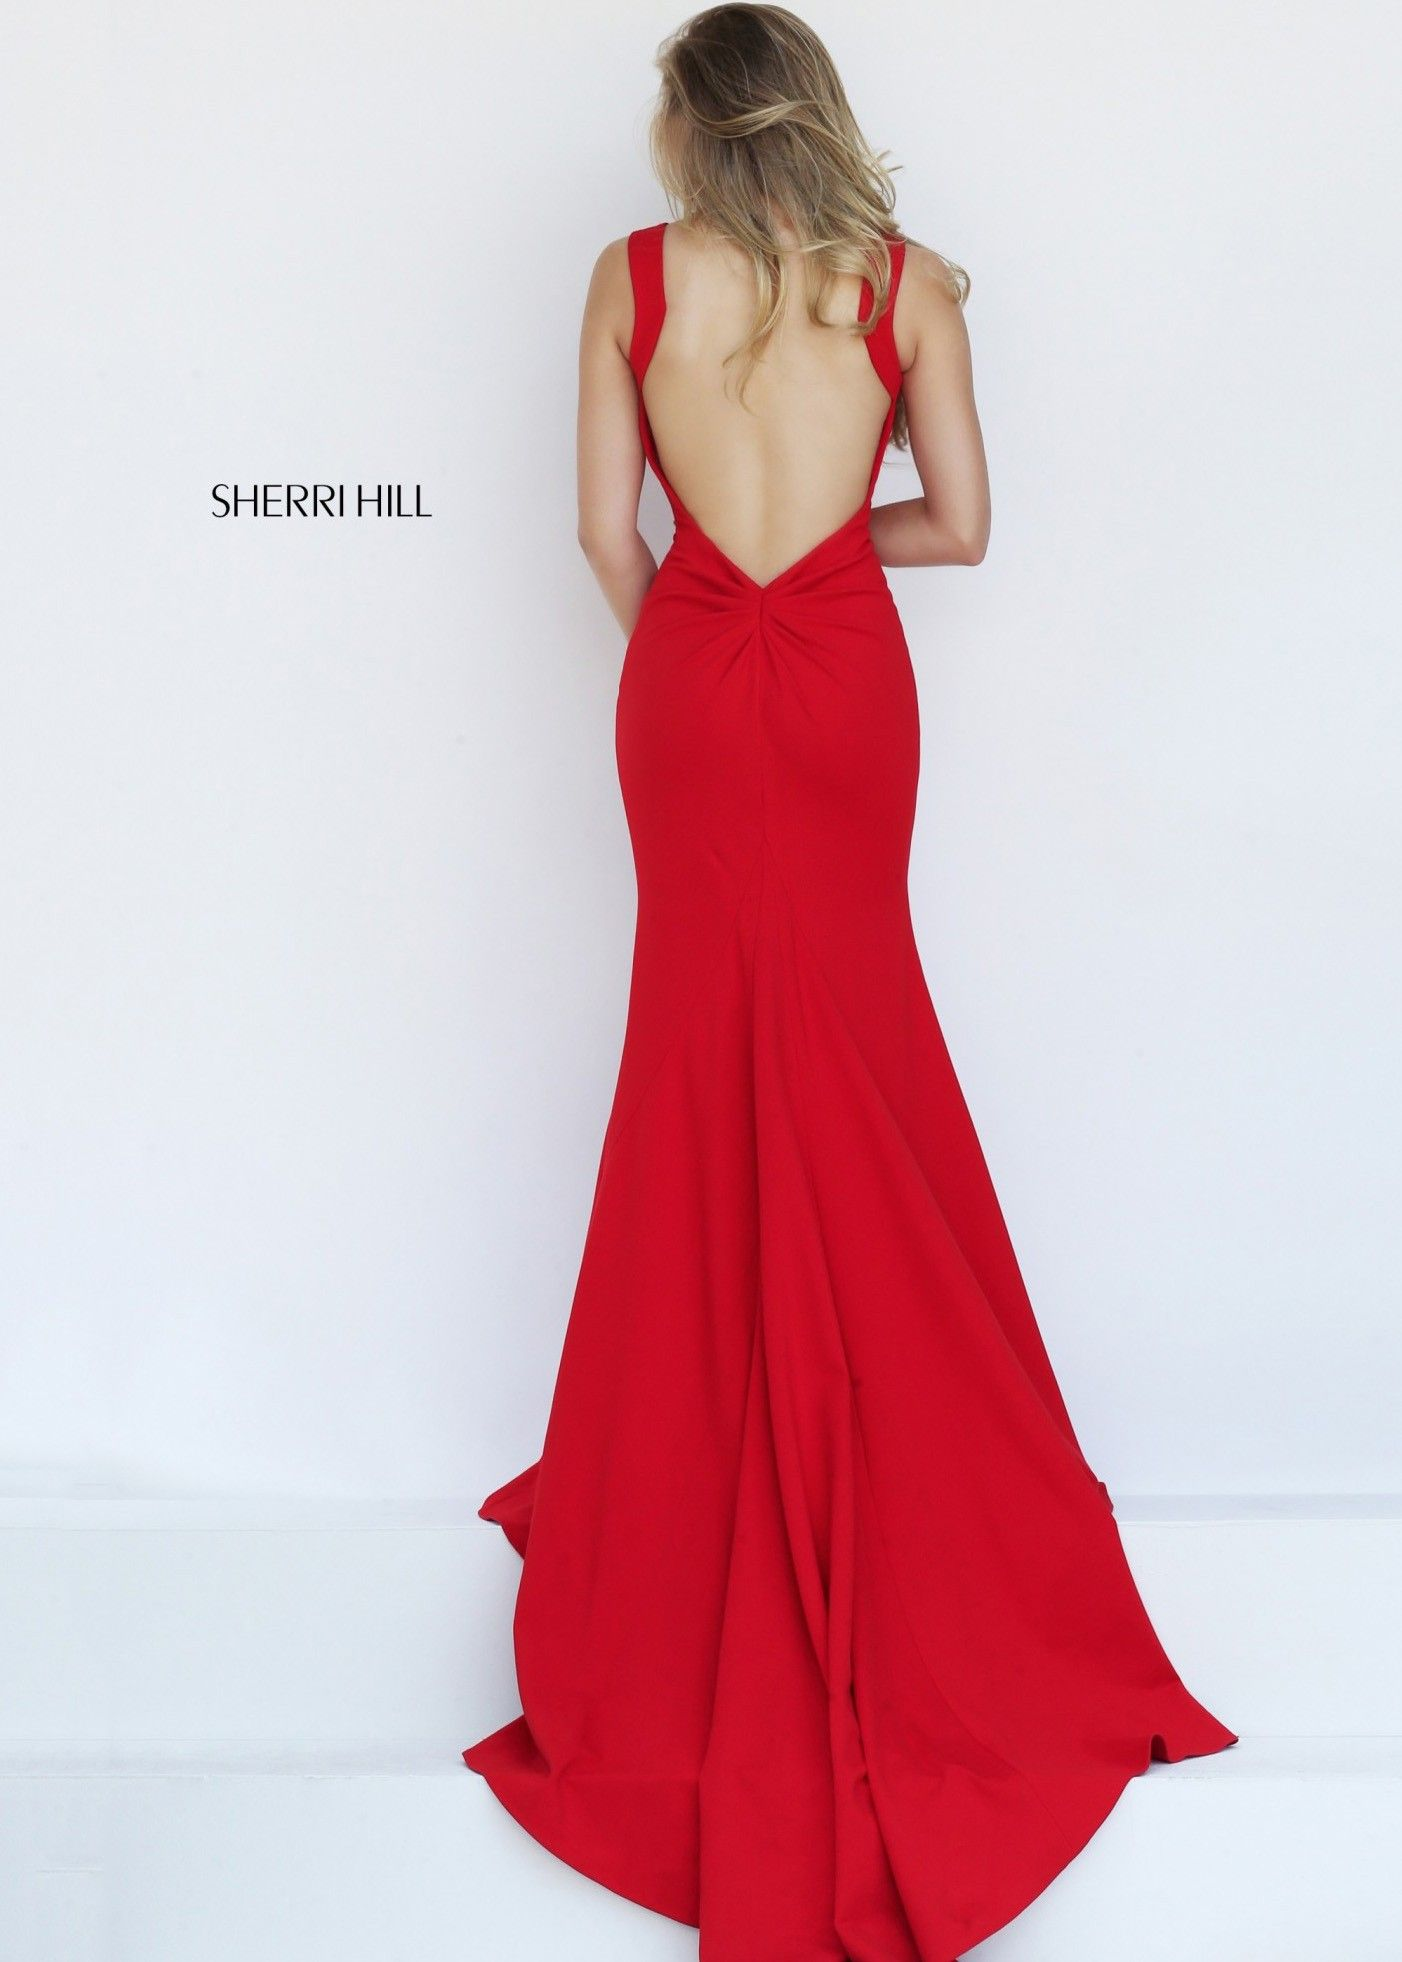 Sherri hill fit and flare open back red jersey prom dress